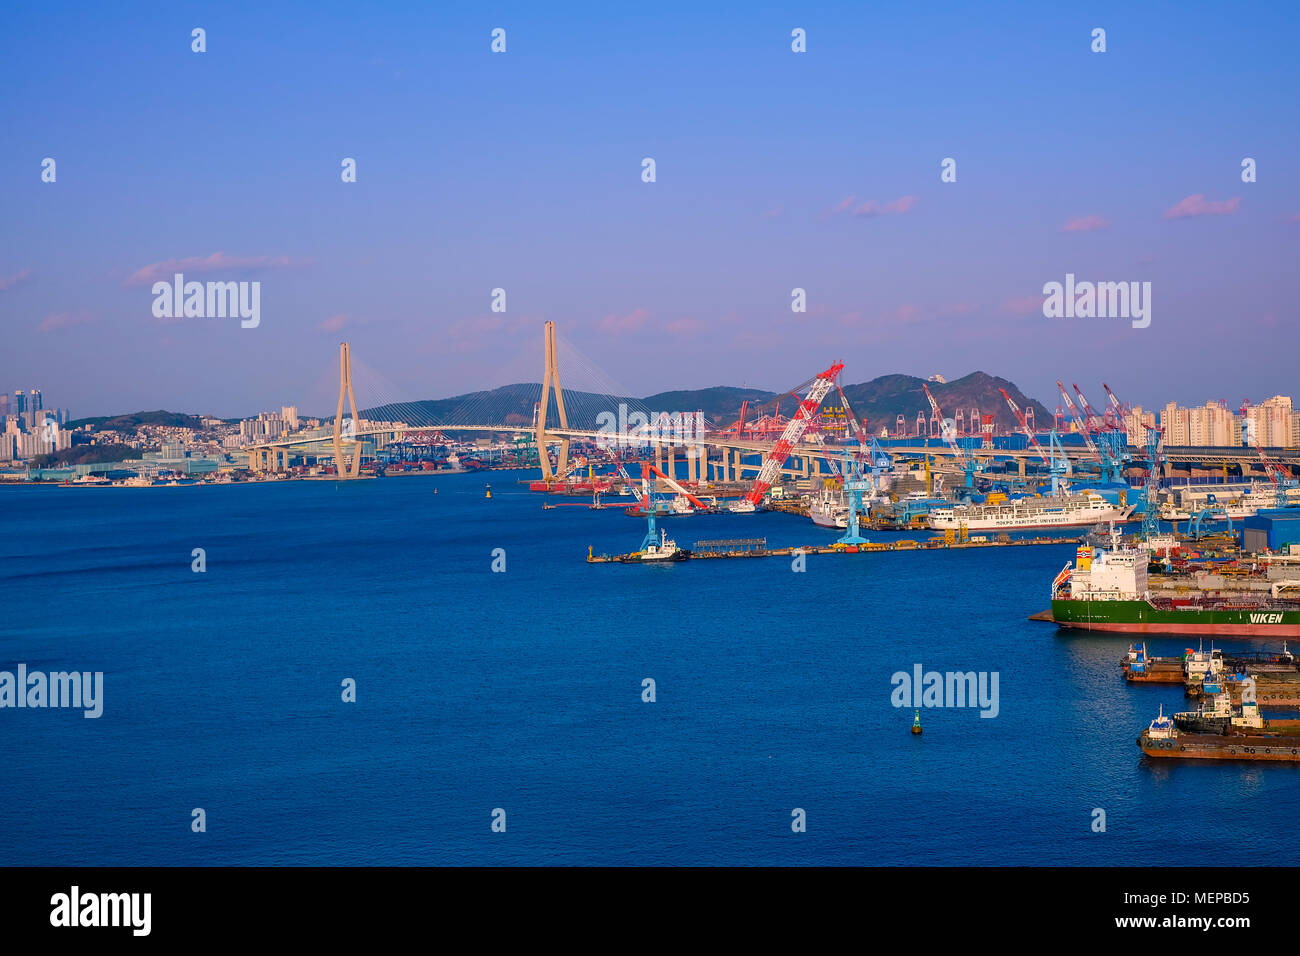 Aerial view of Busan port, South Korea. Stock Photo